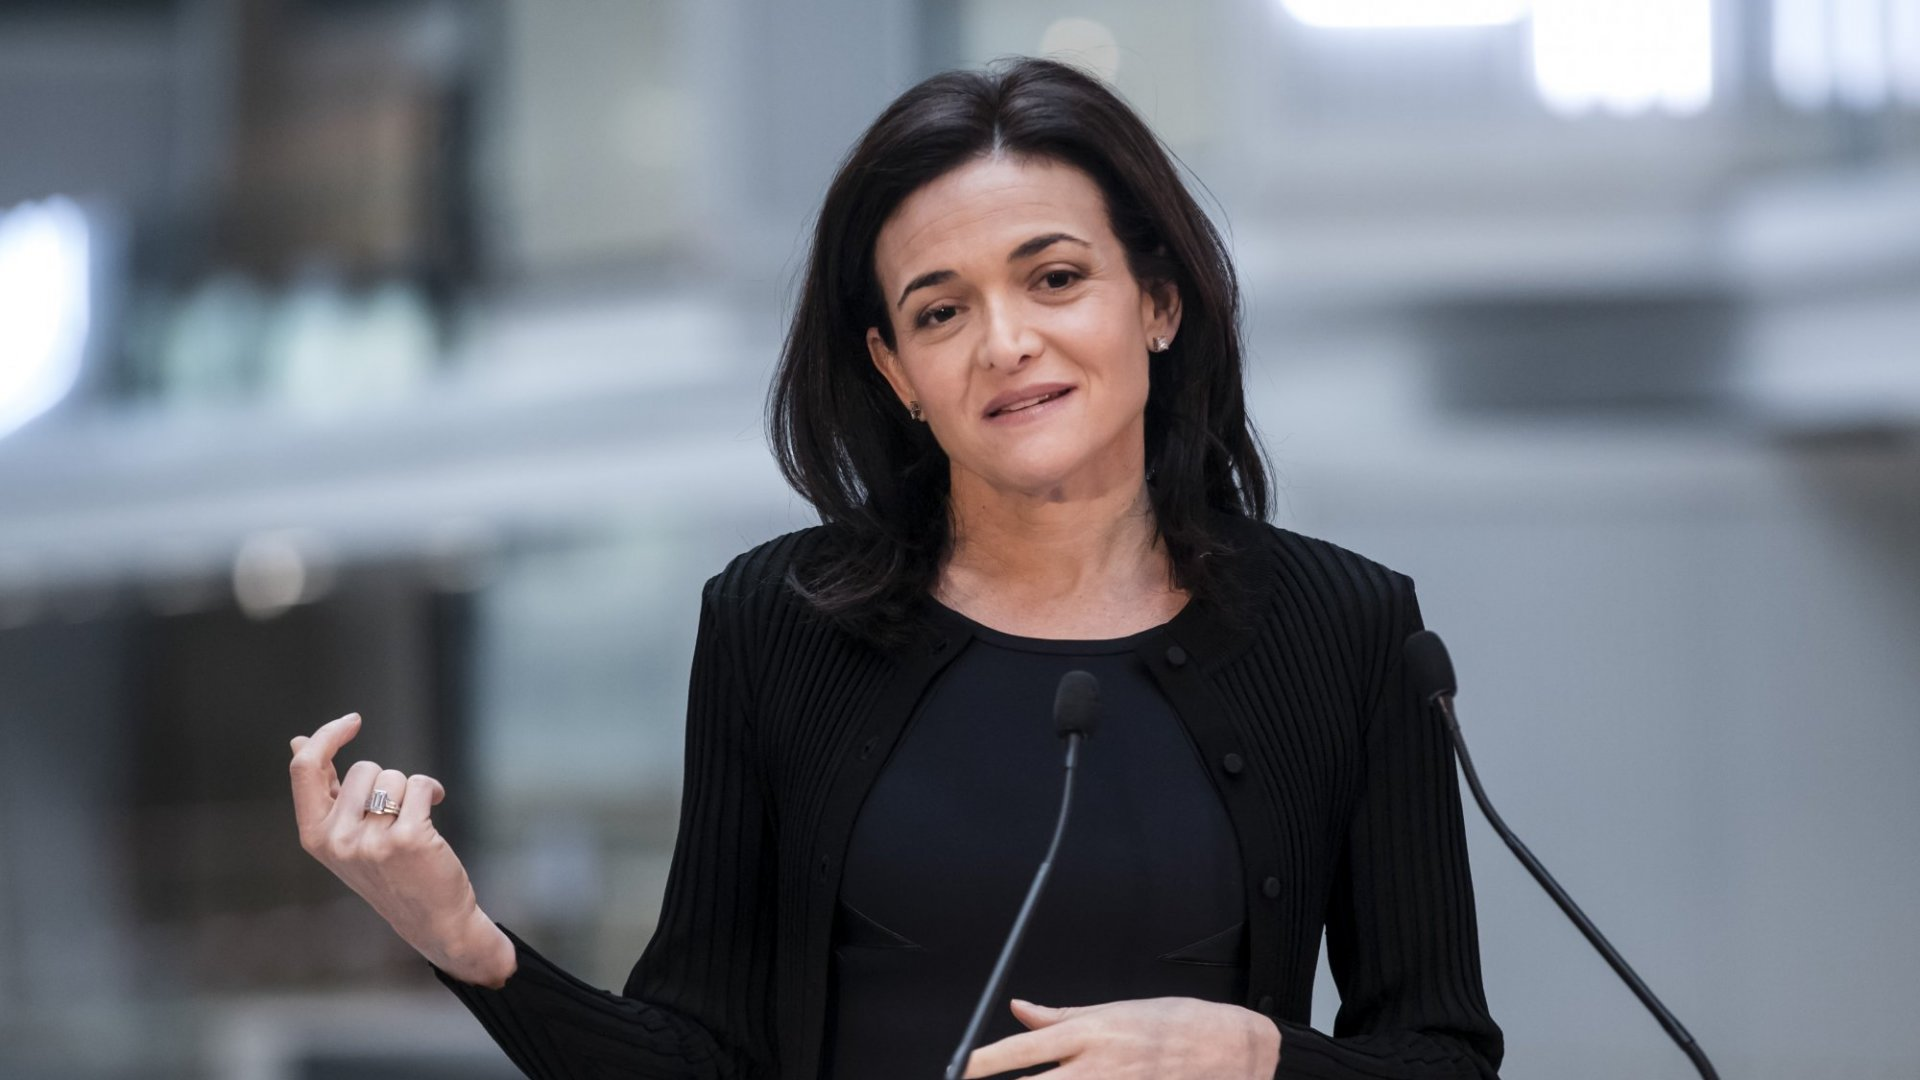 Unapologetic but Contrite: Sheryl Sandberg Vows to Better Protect Facebook Users in Wake of Cambridge Analytica Scandal